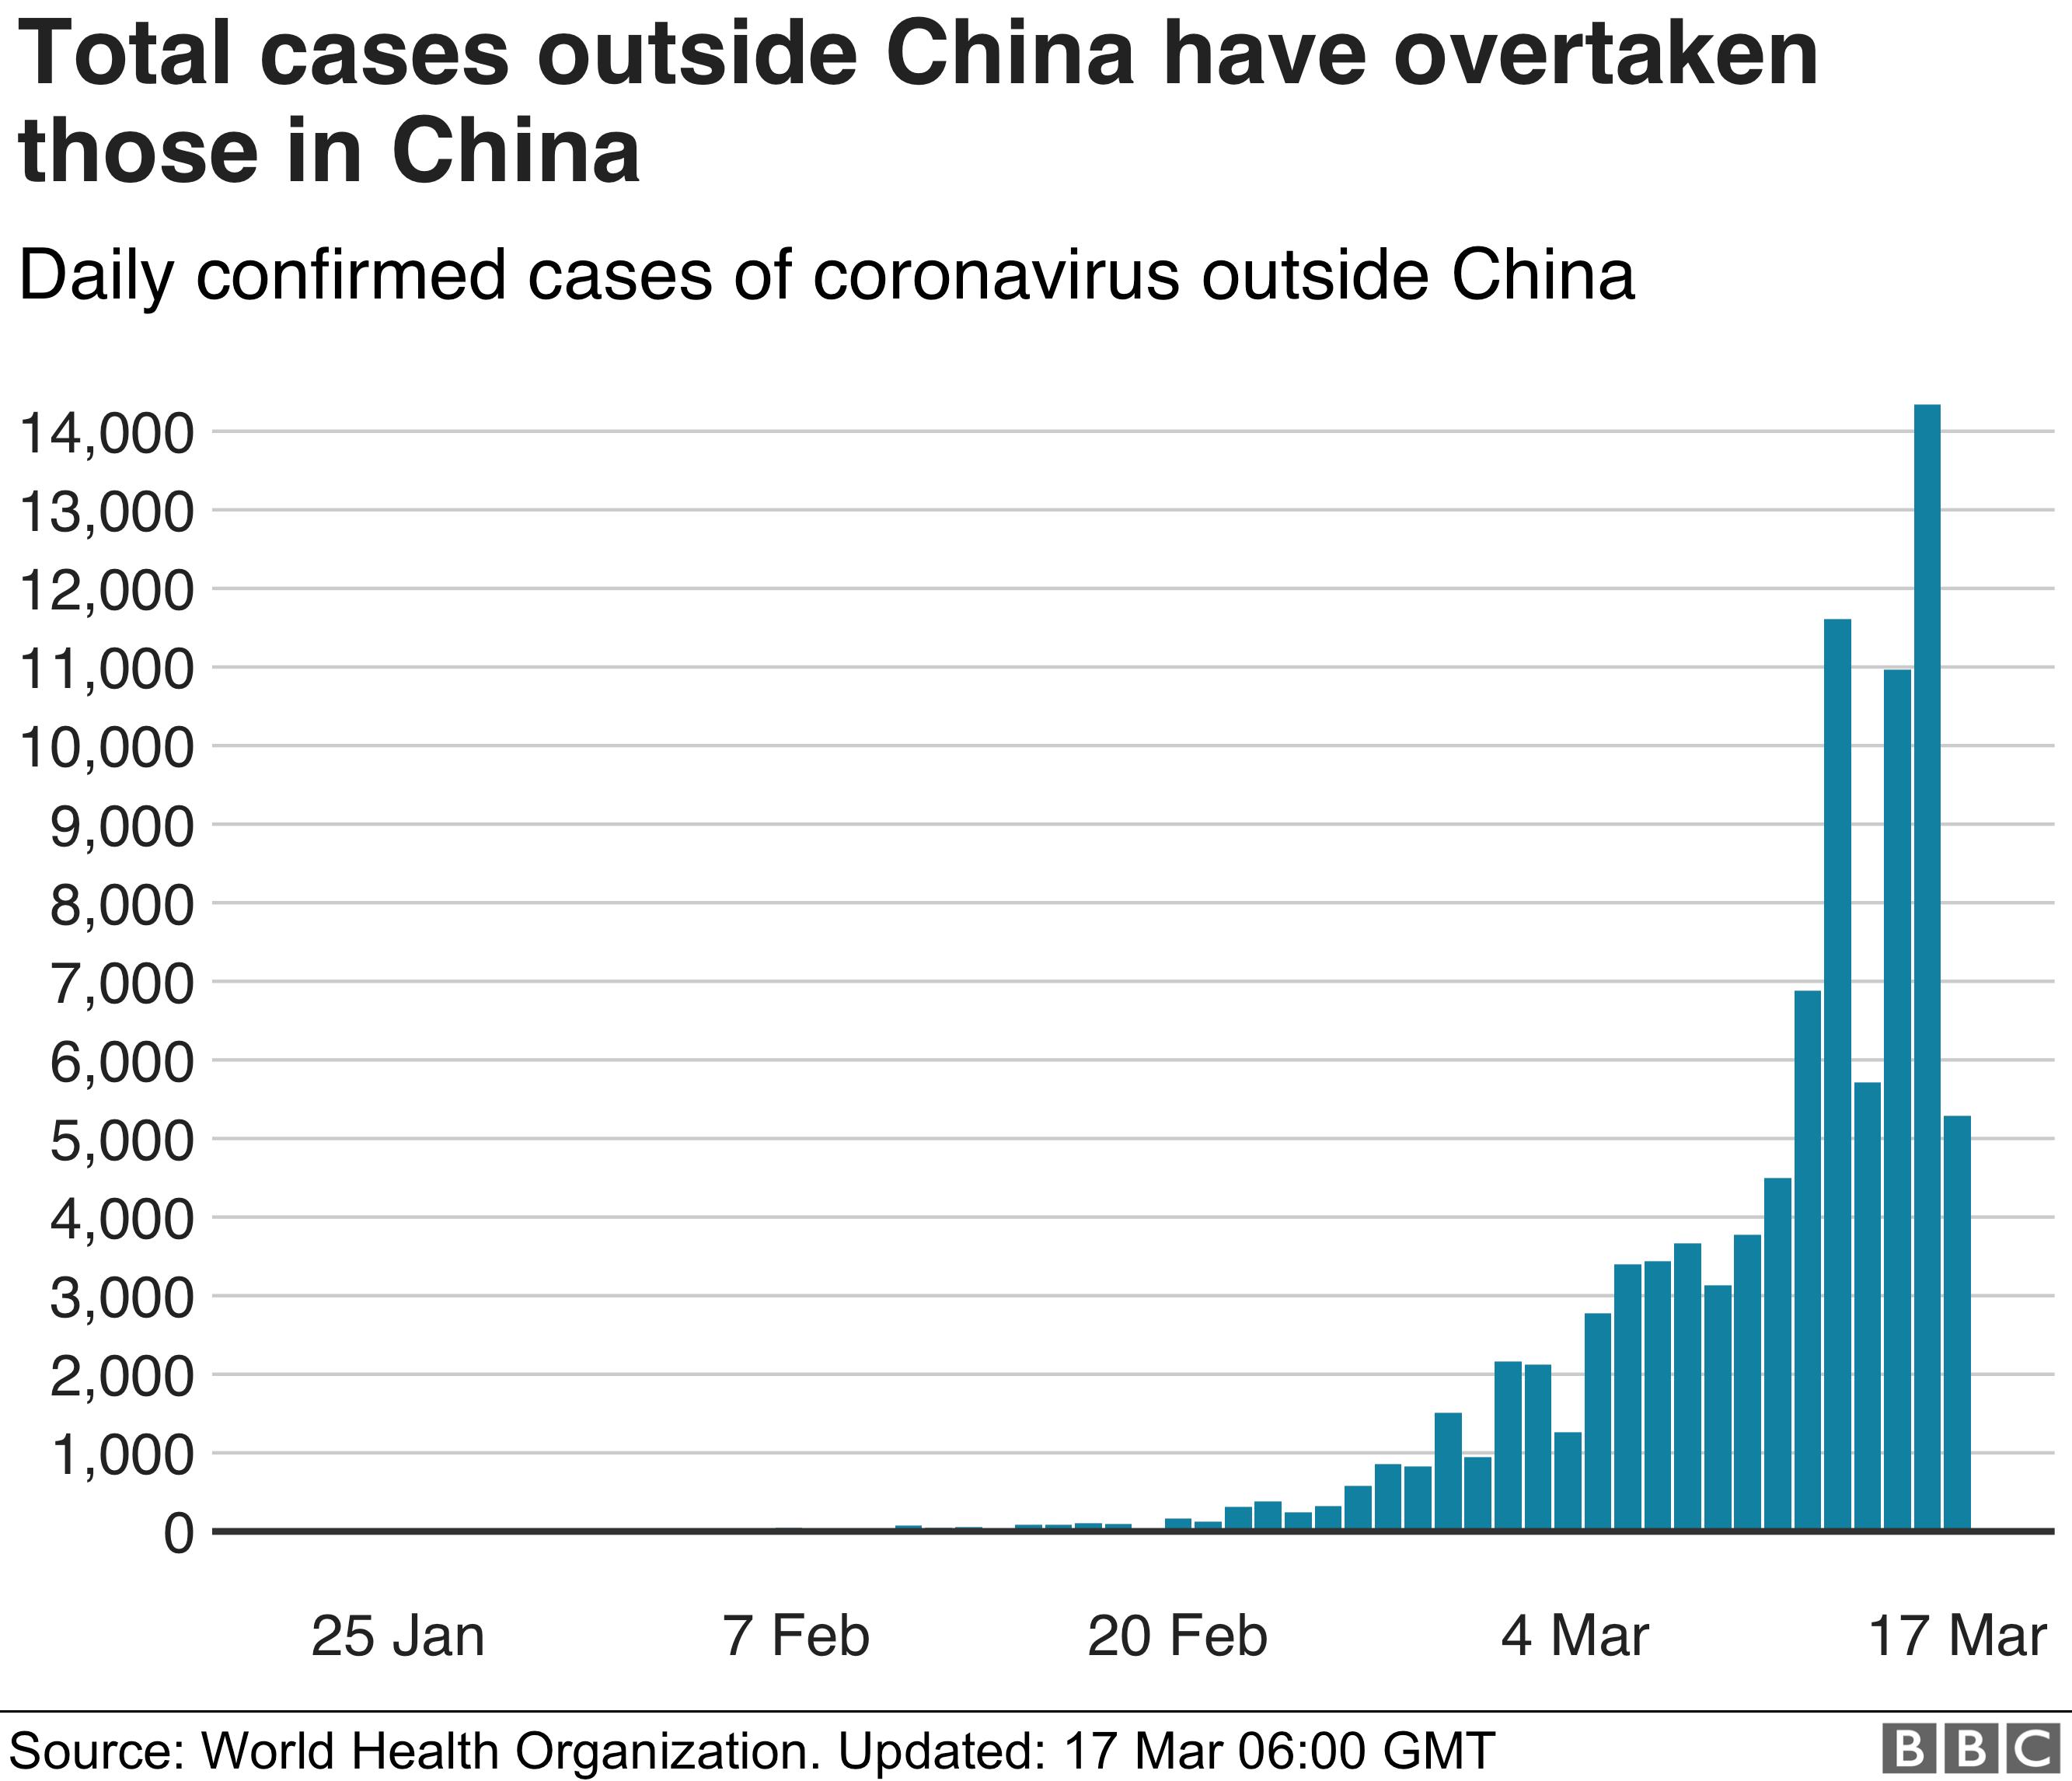 Chart showing total daily cases outside of China